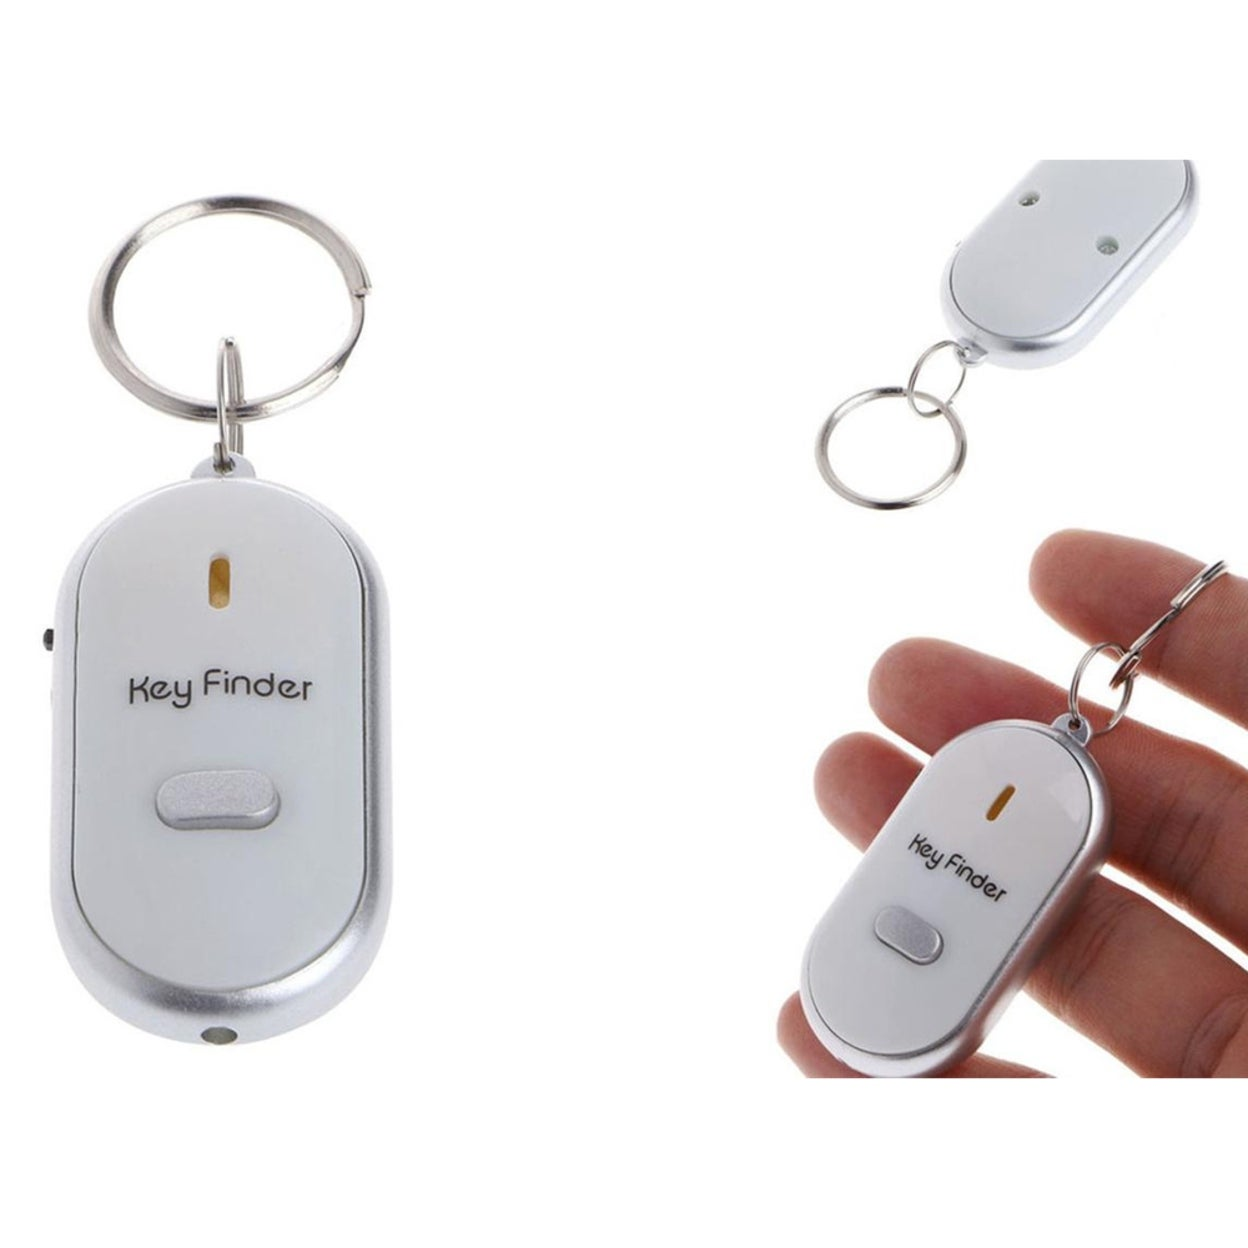 Shop Brand New Locator Tracker Lost Keys Finder Whistle Sound Control On Sale Overstock 31824039